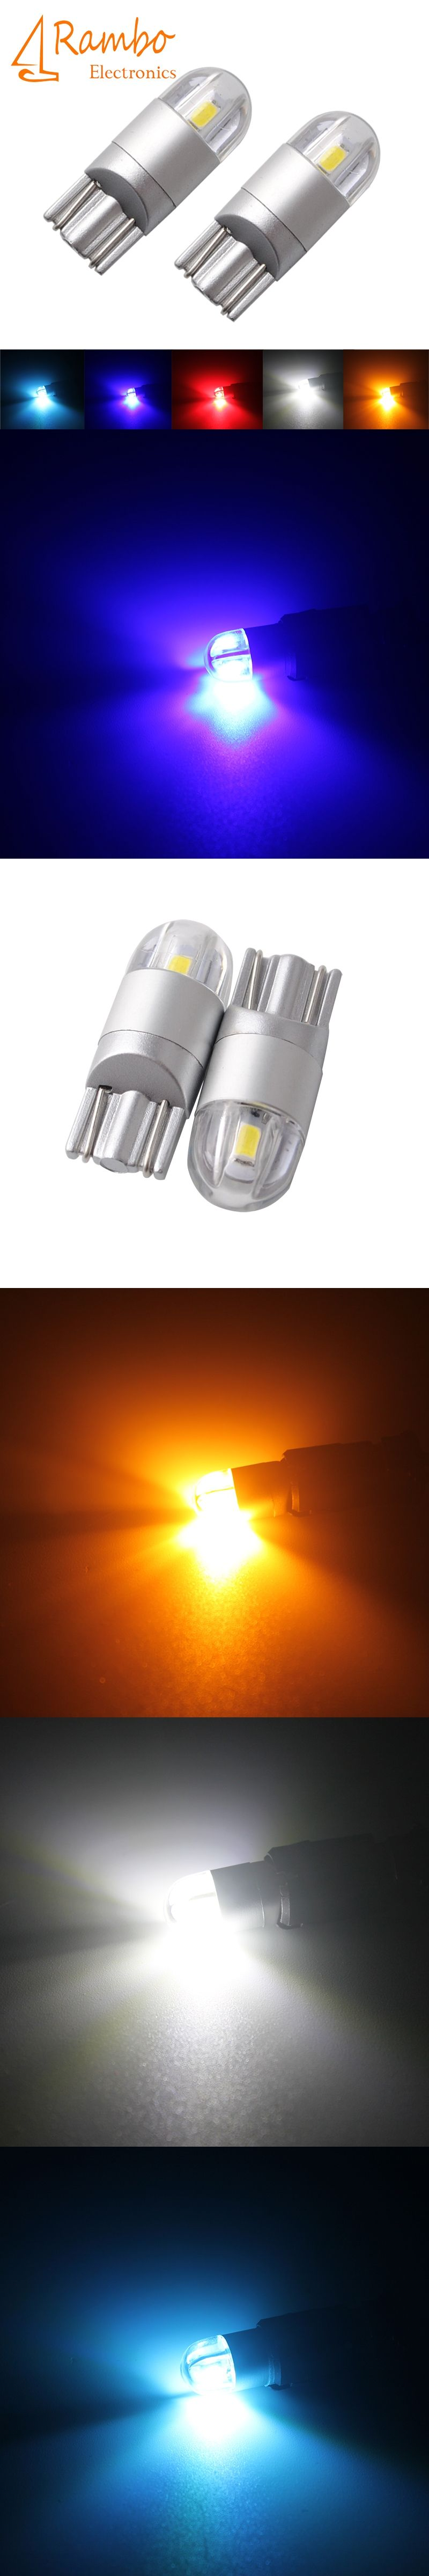 Car styling w5w led t10 3030 2smd auto lamps 168 194 bulb plate car styling w5w led t10 3030 2smd auto lamps 168 194 bulb plate light parking fog aloadofball Images